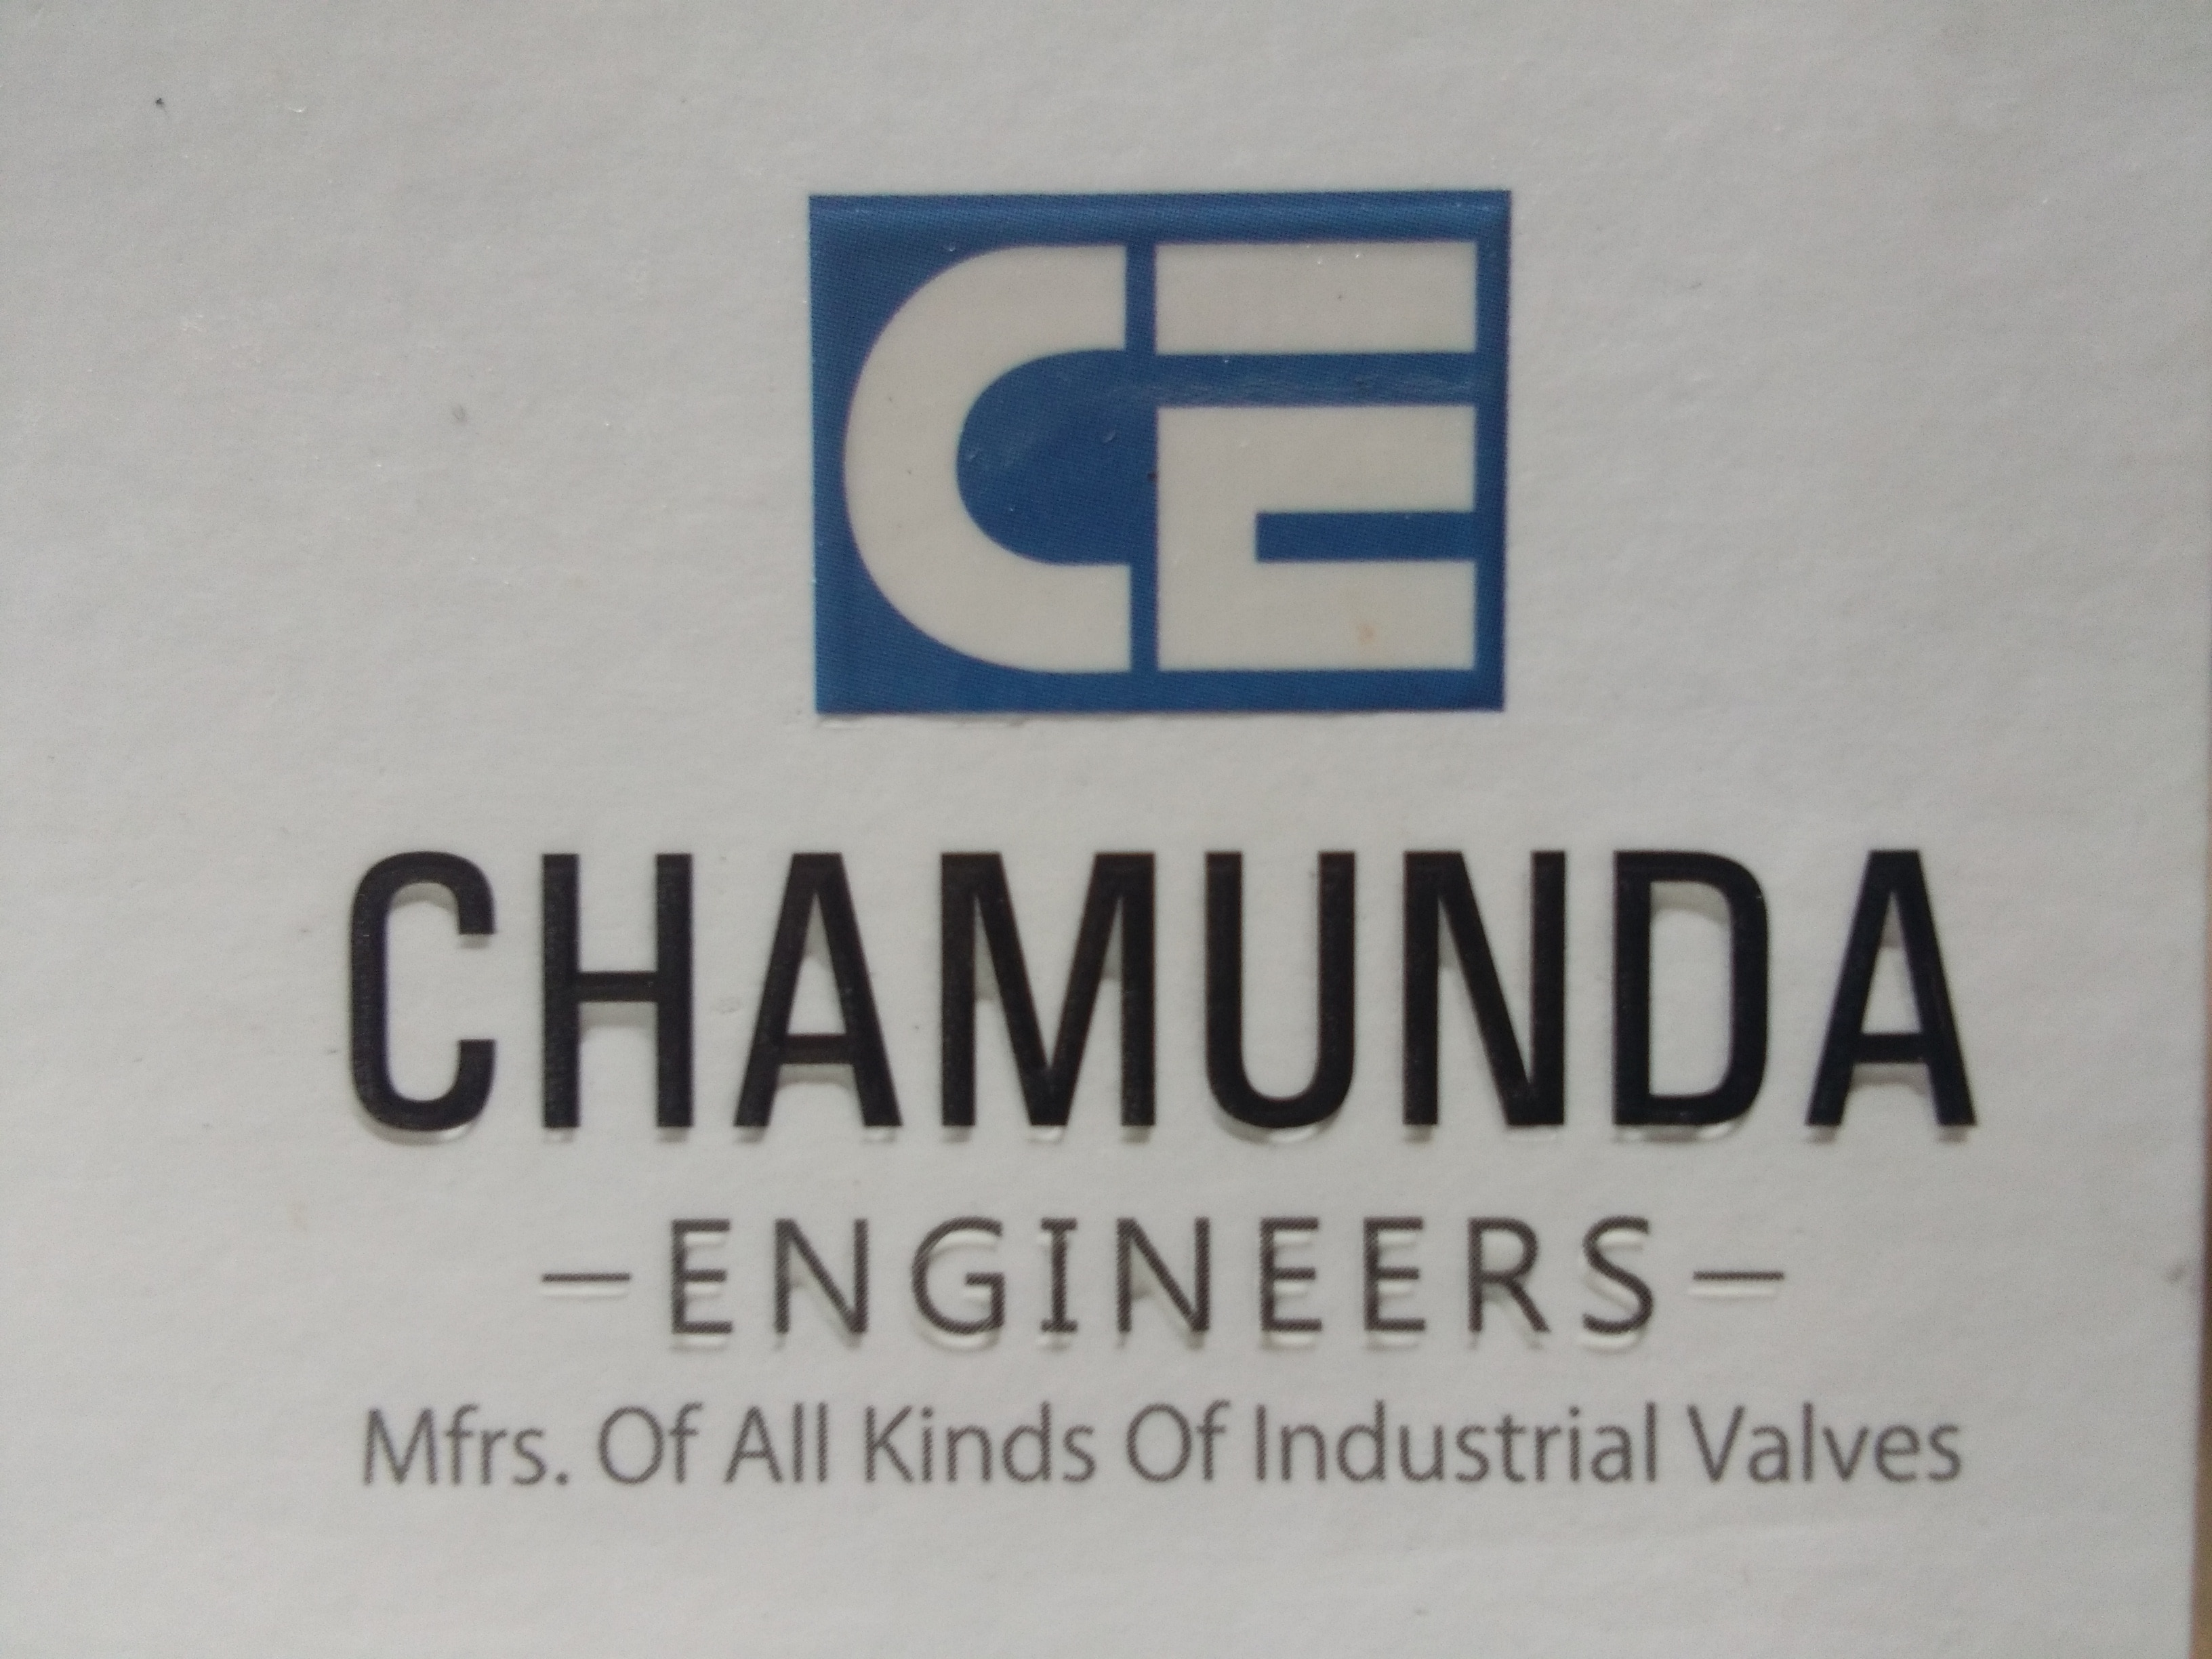 WELCOME TO Chamunda Engineers we are the leading manufacturer of Industrial Valve and Ejector, Diaphragm valve, butterfly valve, Gate valve, Globe valve, Ball valve, Check valve, Strainer, Victaulic coupling, Ejector in Ahmedabad Gujarat India